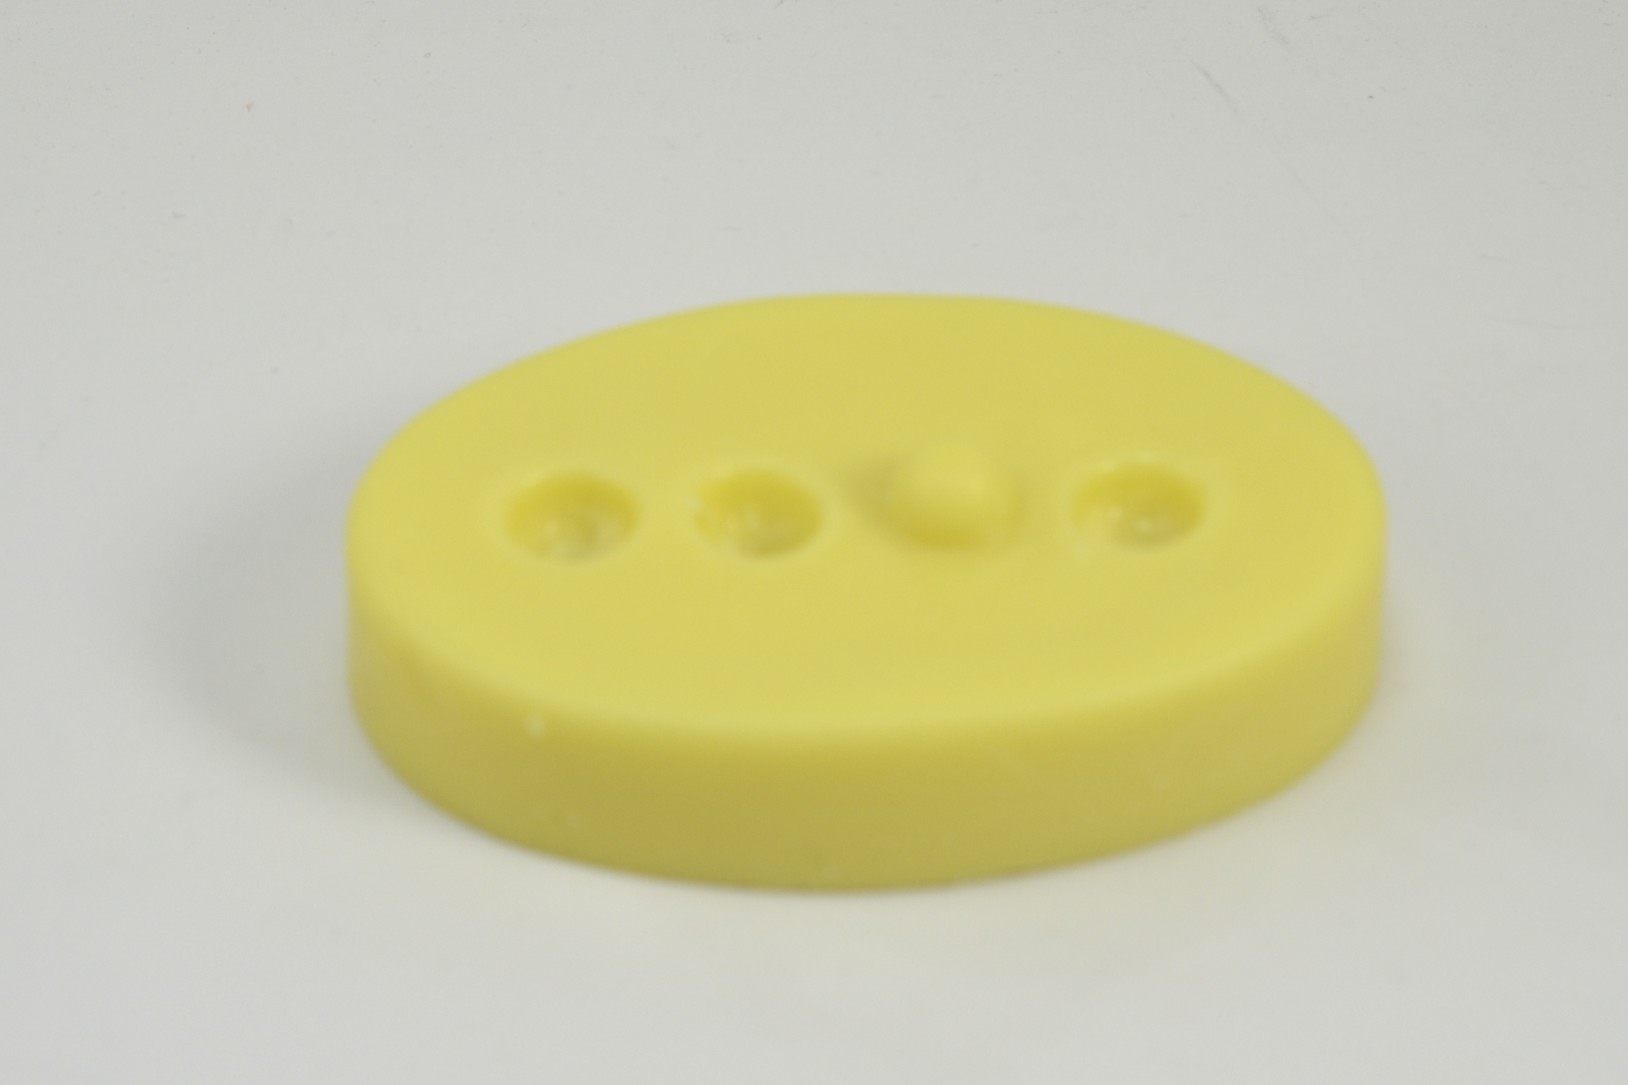 lush therapy massage bar review